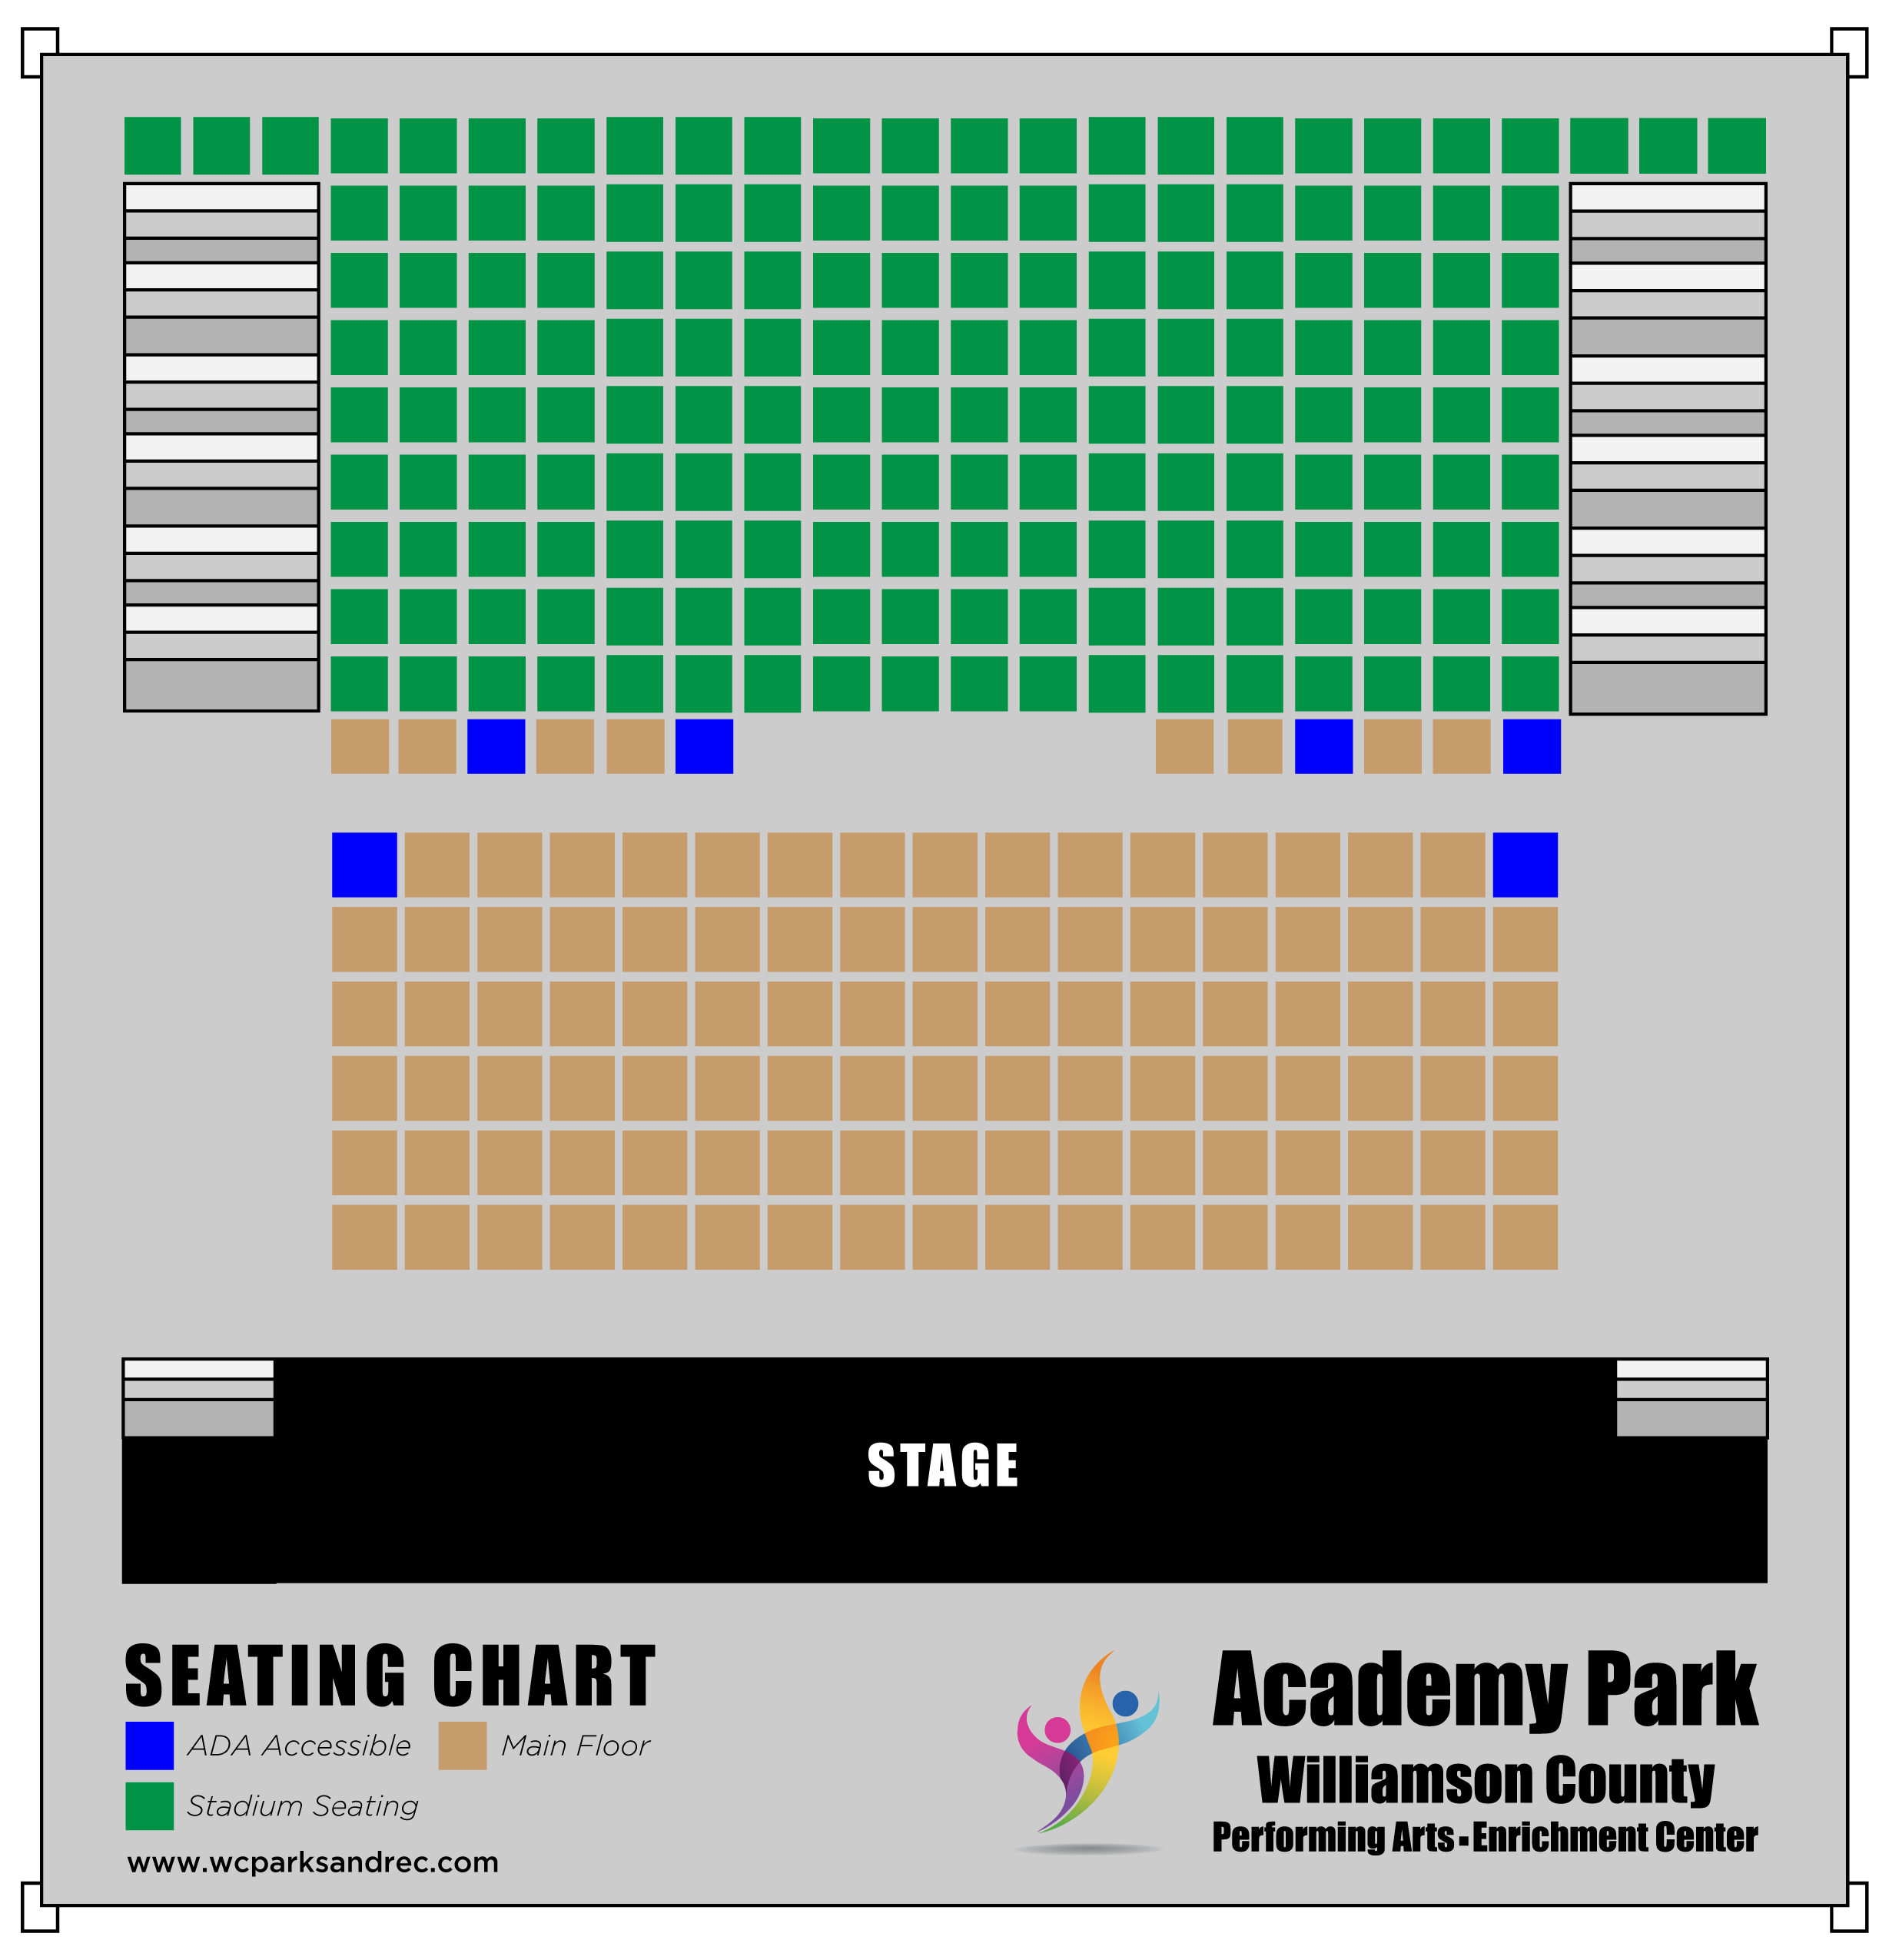 Academy Park Seating Chart